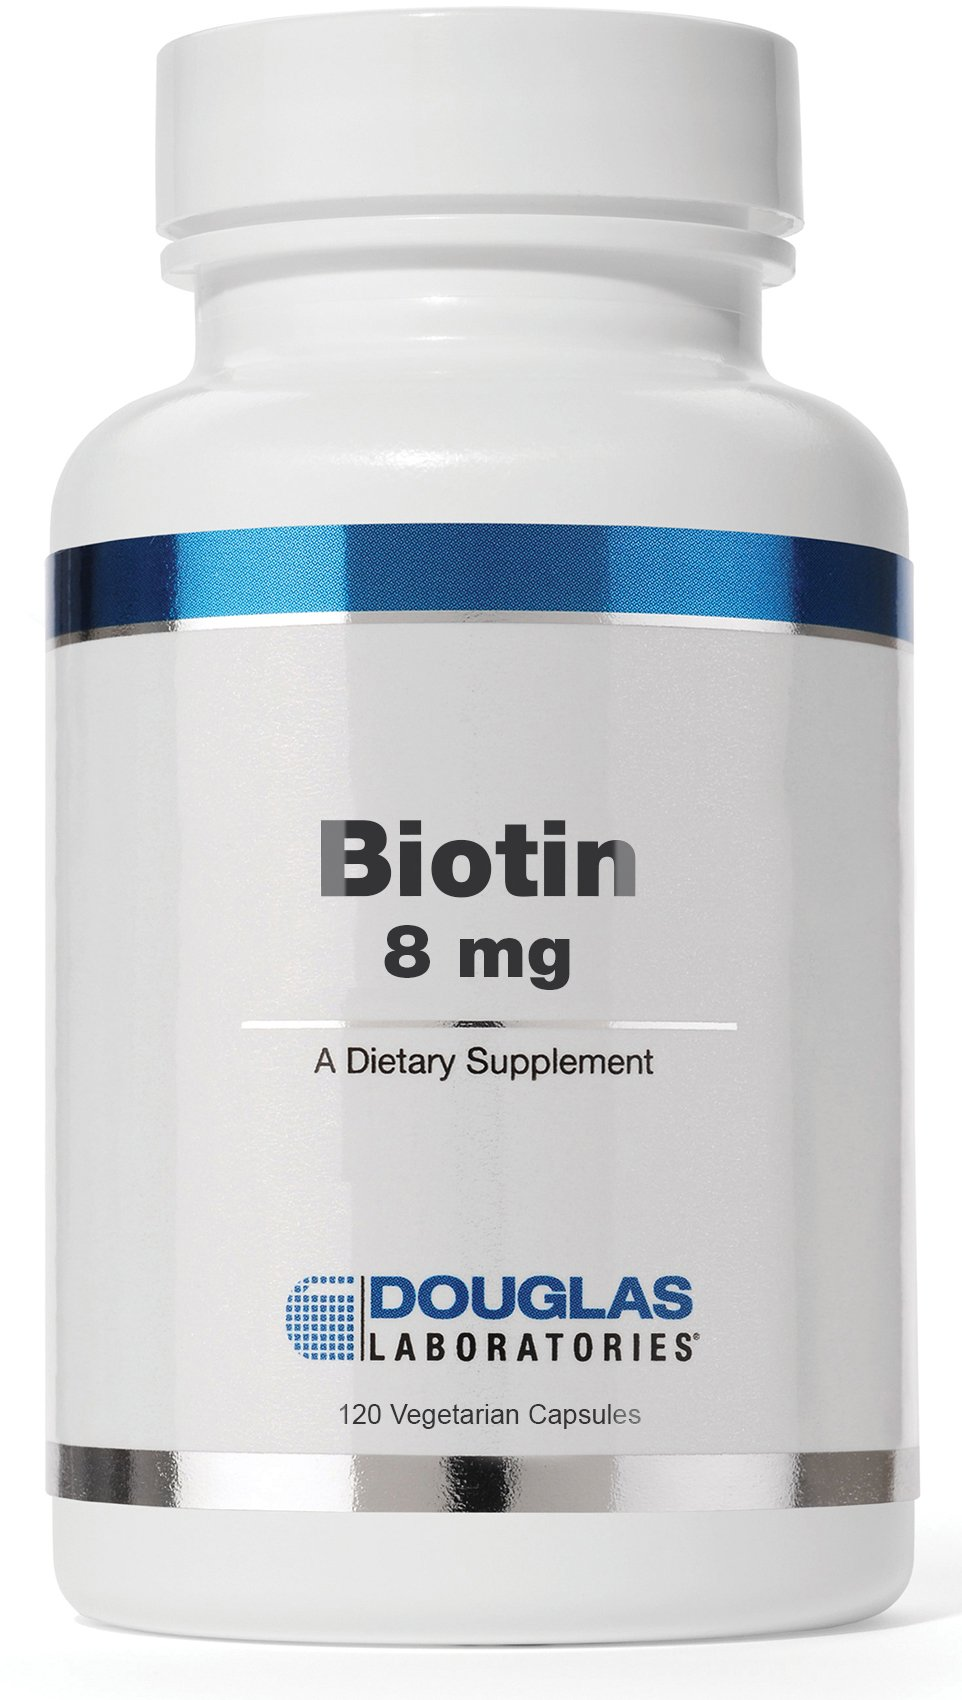 Douglas Laboratories - Biotin 8 mg - Vitamin B7 to Support Glucose Metabolism, Enzyme Production and Nerve Function - 120 Capsules